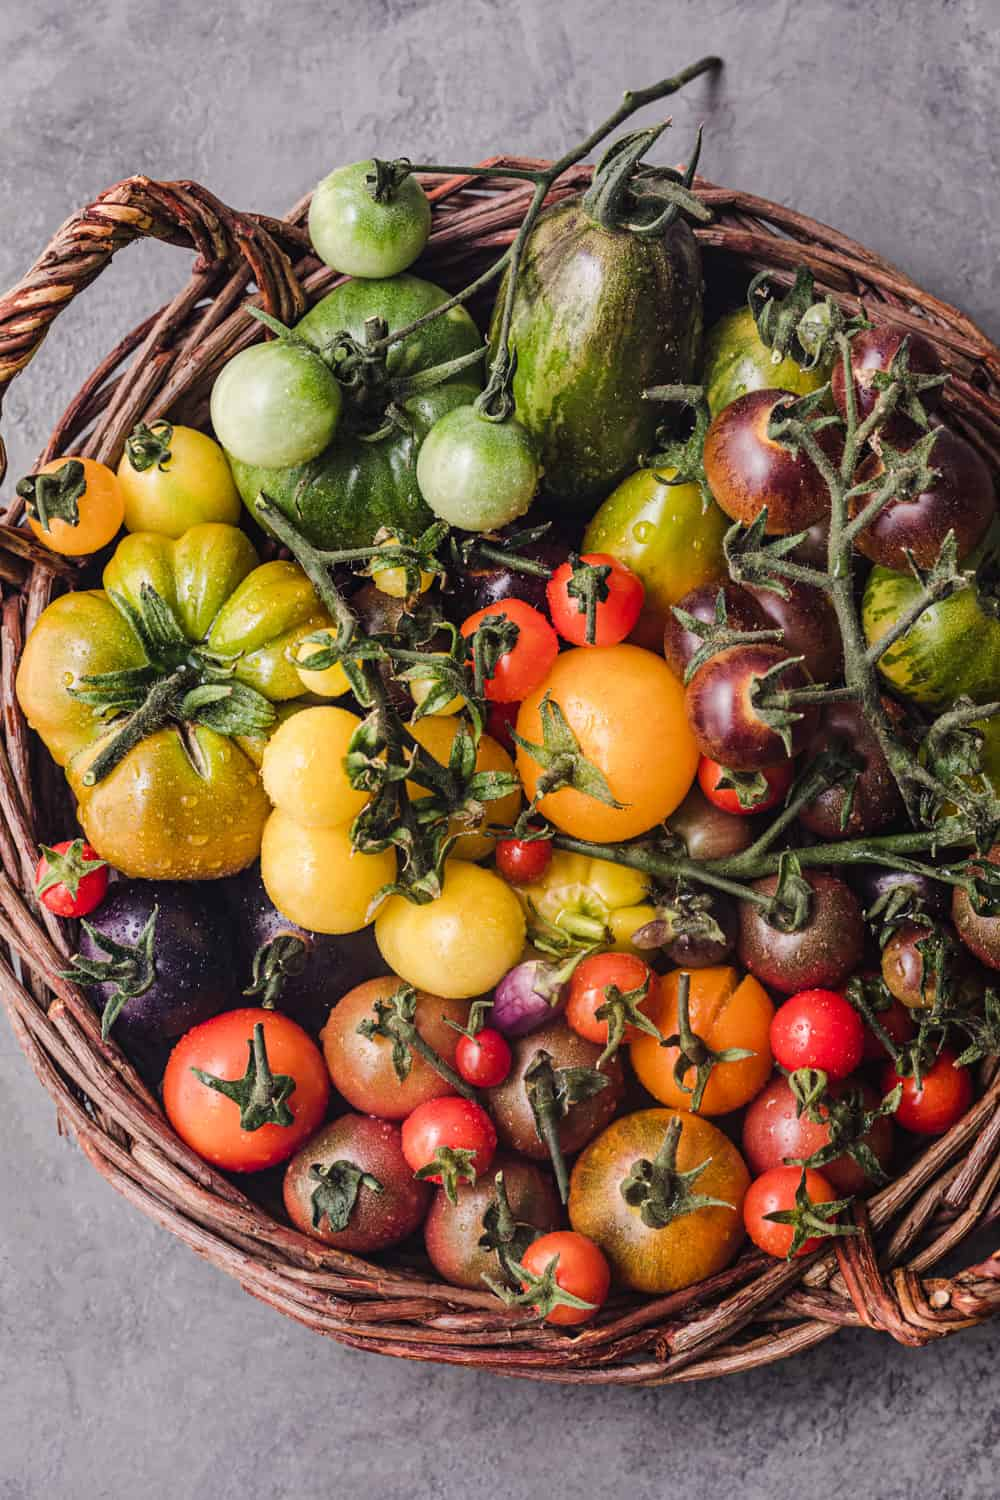 A basket filled with different shapes, sizes and colors of heirloom tomatoes. These colorful heirloom tomatoes are in every color of the rainbow! Overhead shot.